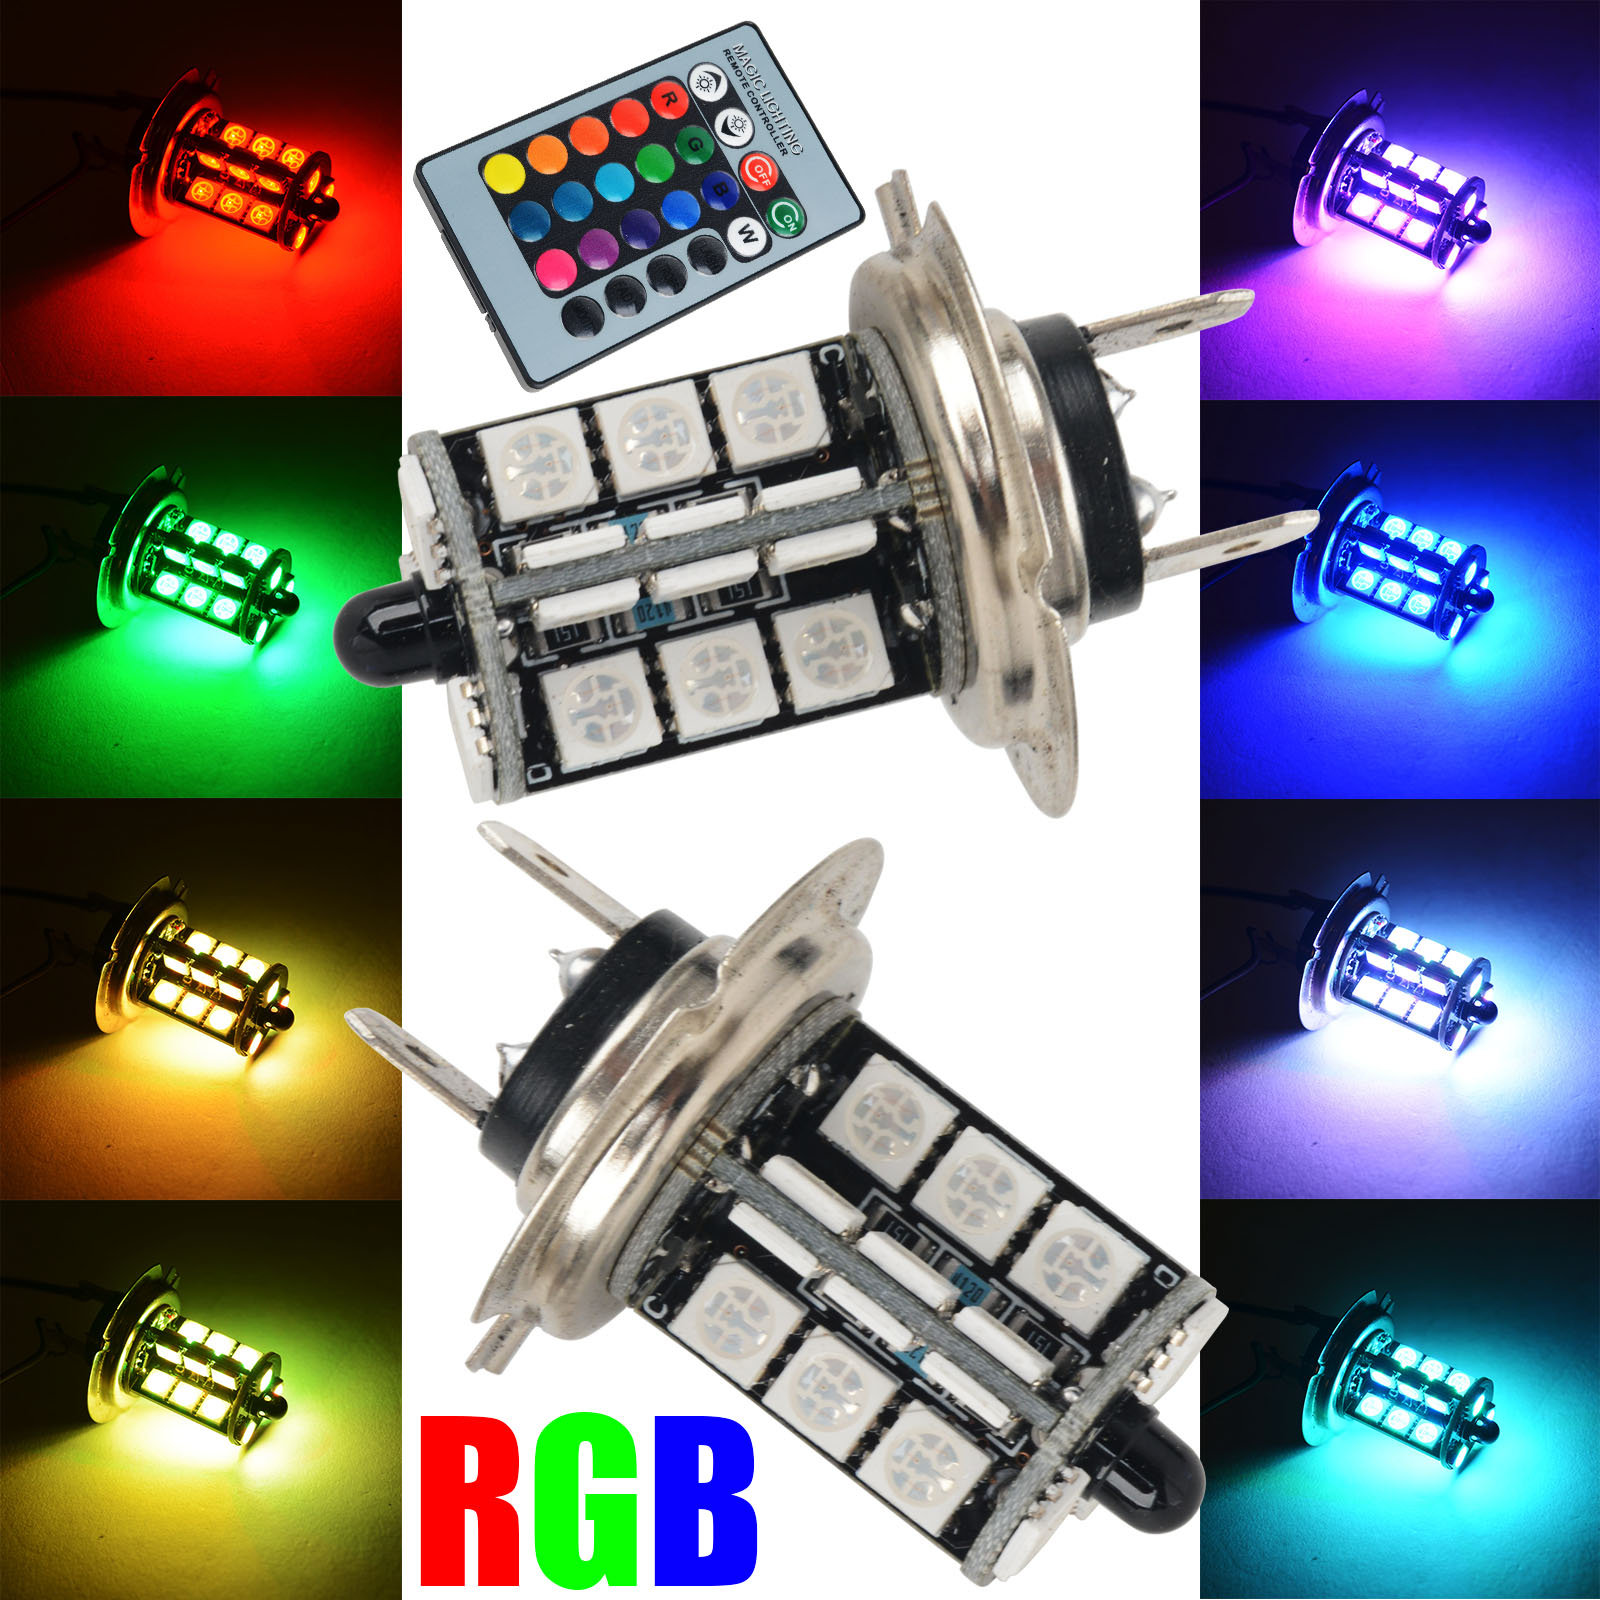 Mayitr 2pcs RGB LED Car Headlight H7 5050 27 SMD LED Decoration DRL Fog Light Head Lamp Bulbs +  Wireless Control Remote DC 12V free shipping 1pcs lot 42wled street light e26 27 e39 40 led base rotation 360 degress ac85 265v input voltage ip54 ce rohs